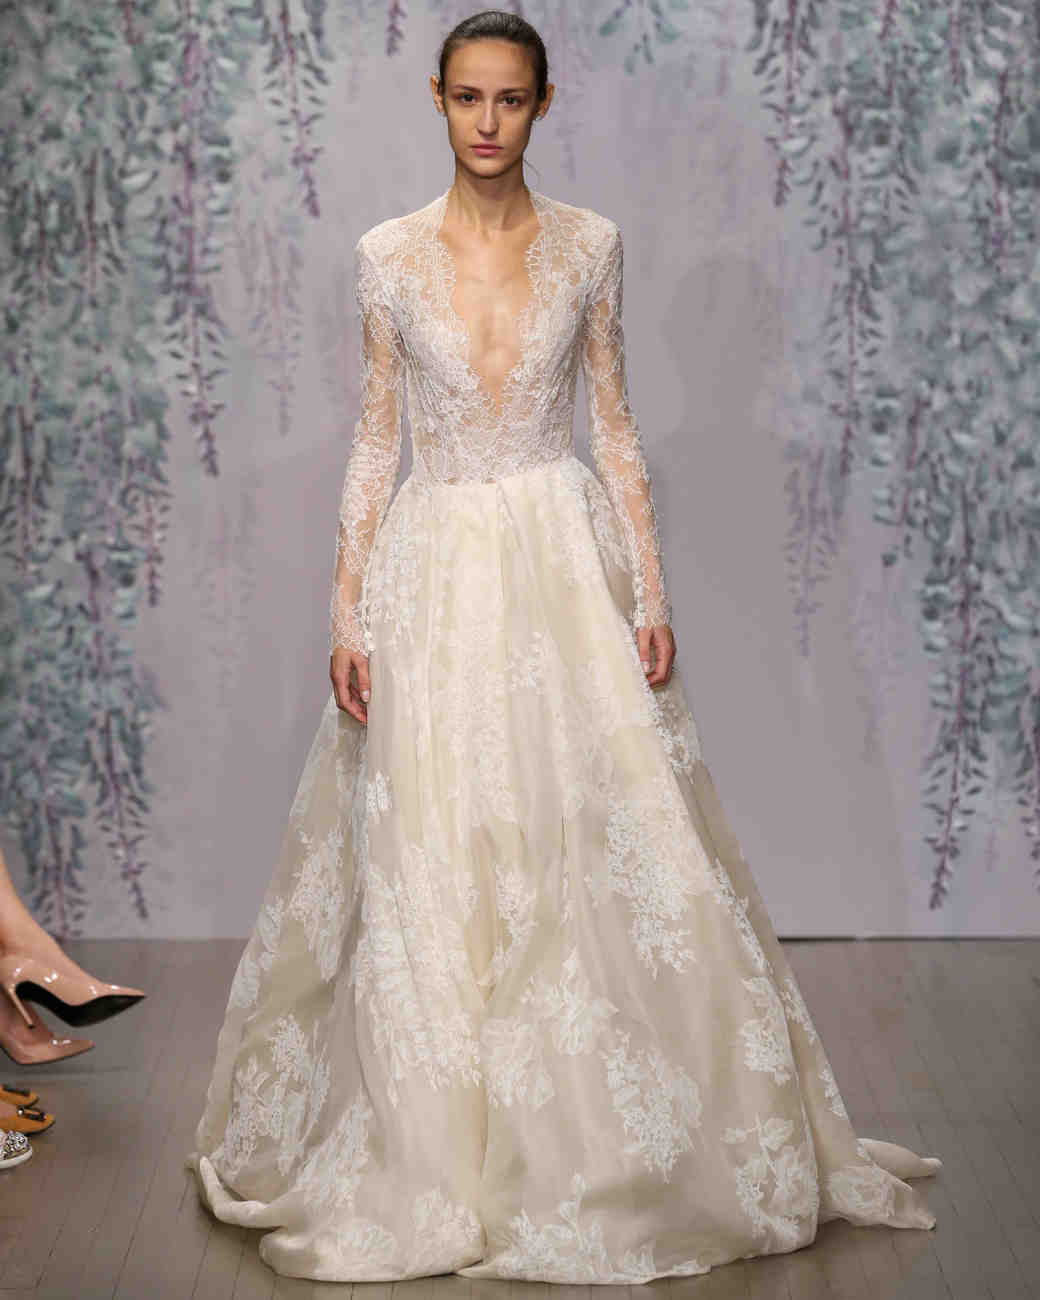 Monique Lhuillier Fall 2016 Wedding Dress Collection | Martha ...